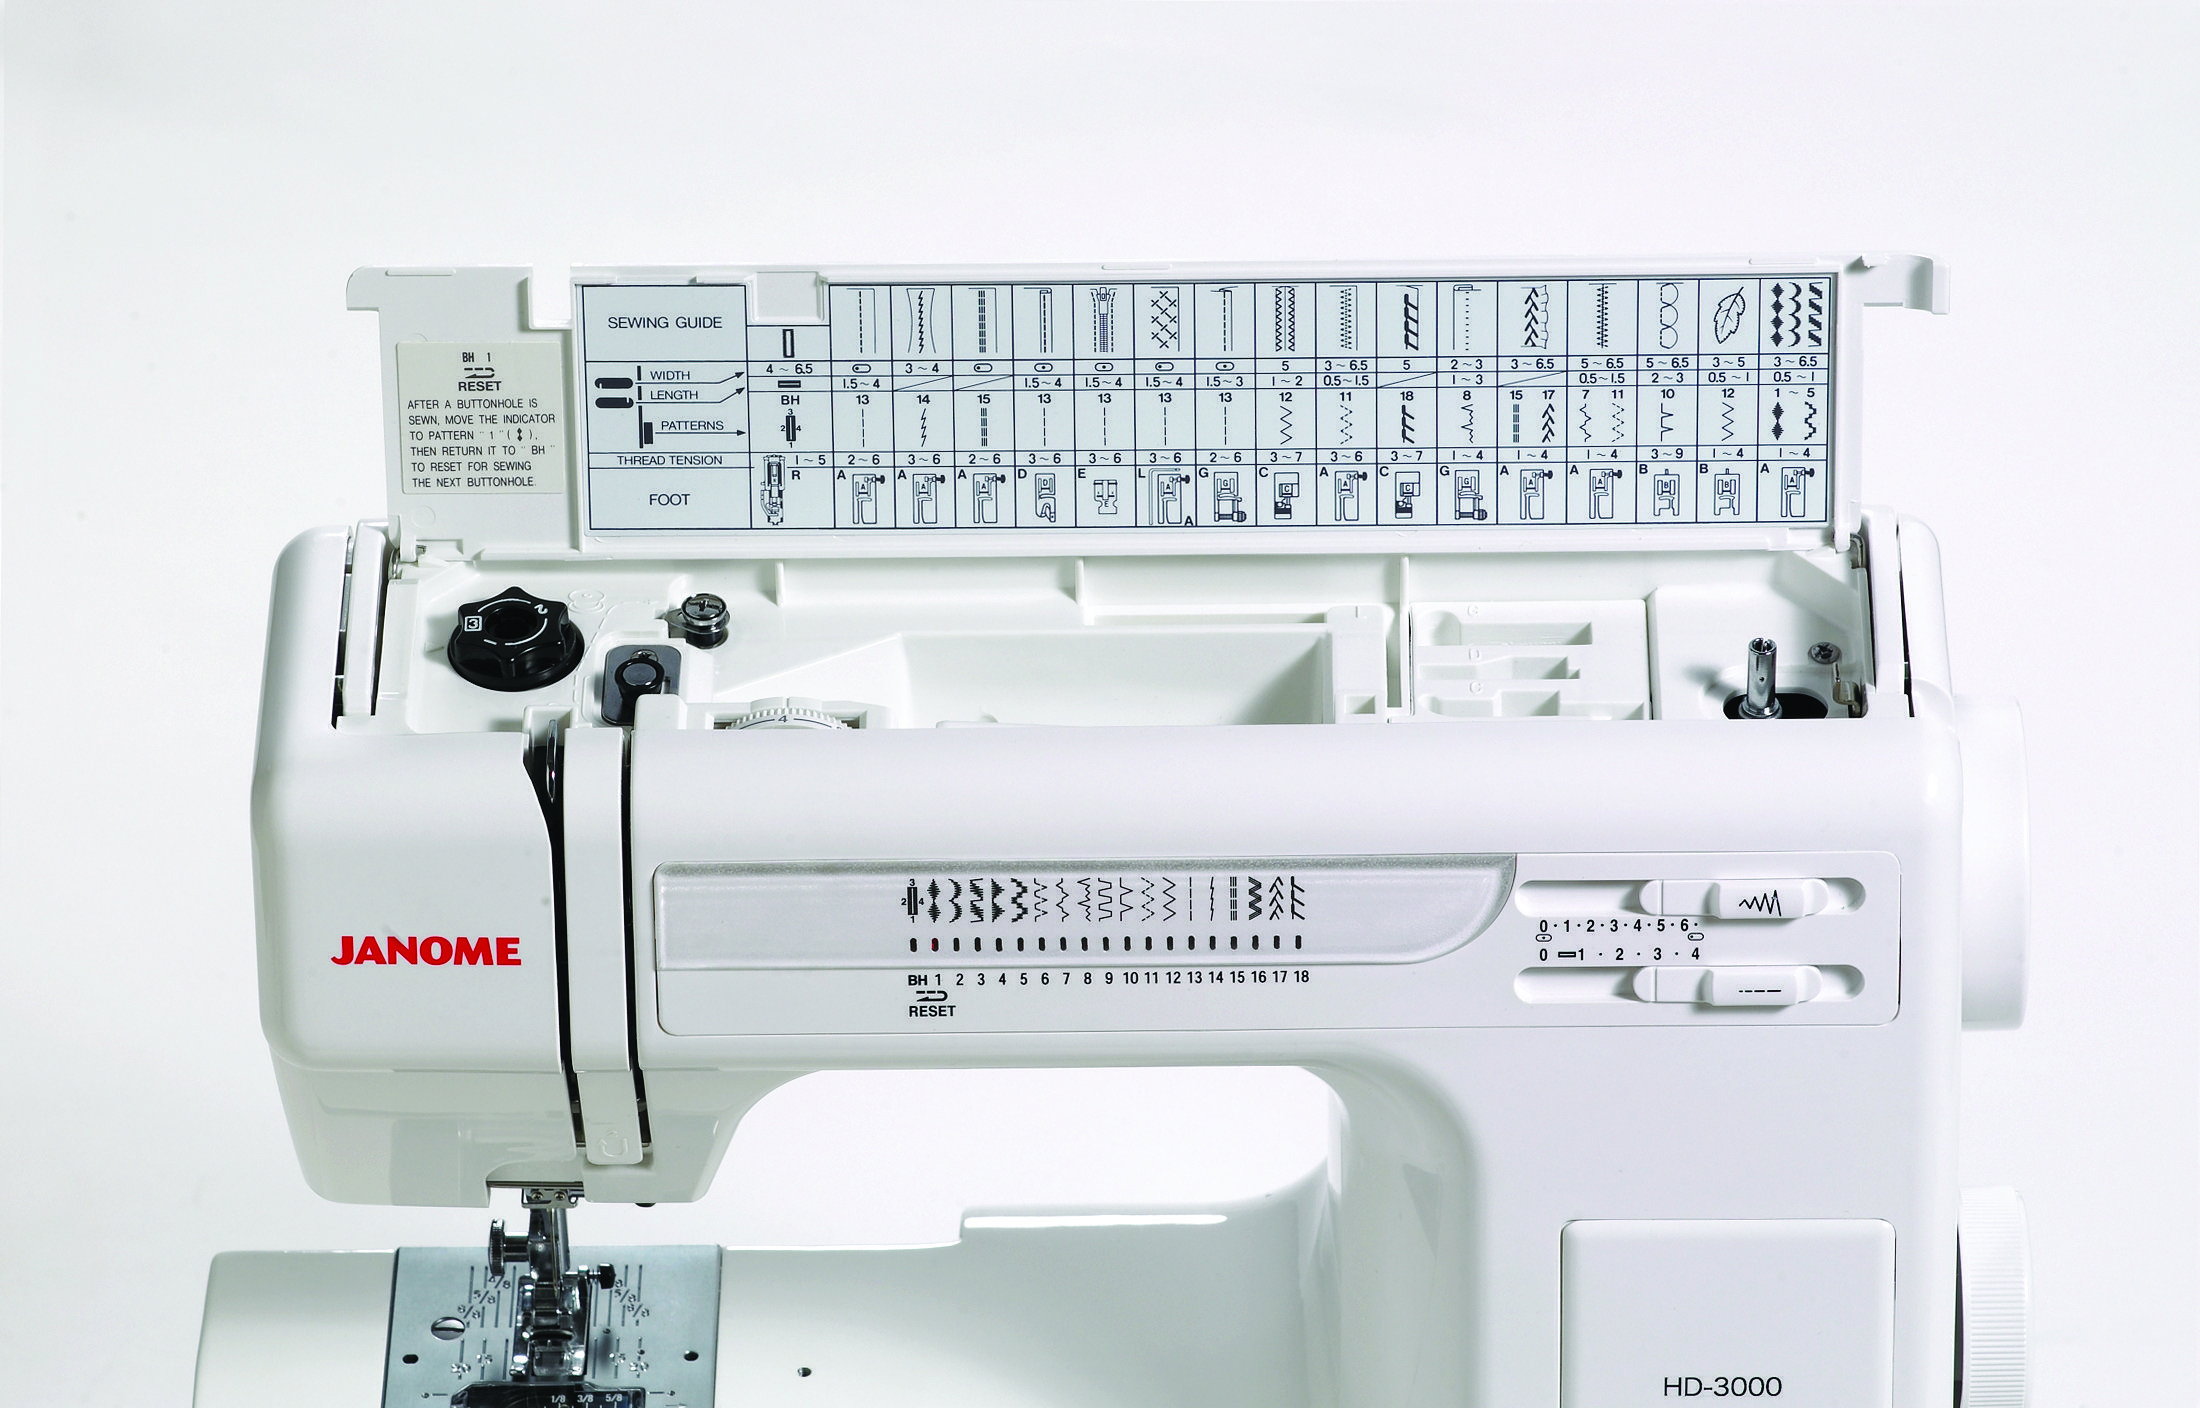 inflowcomponent res janome mod cancel s sewing content quilting quilt p inflow computerized machine global ebay